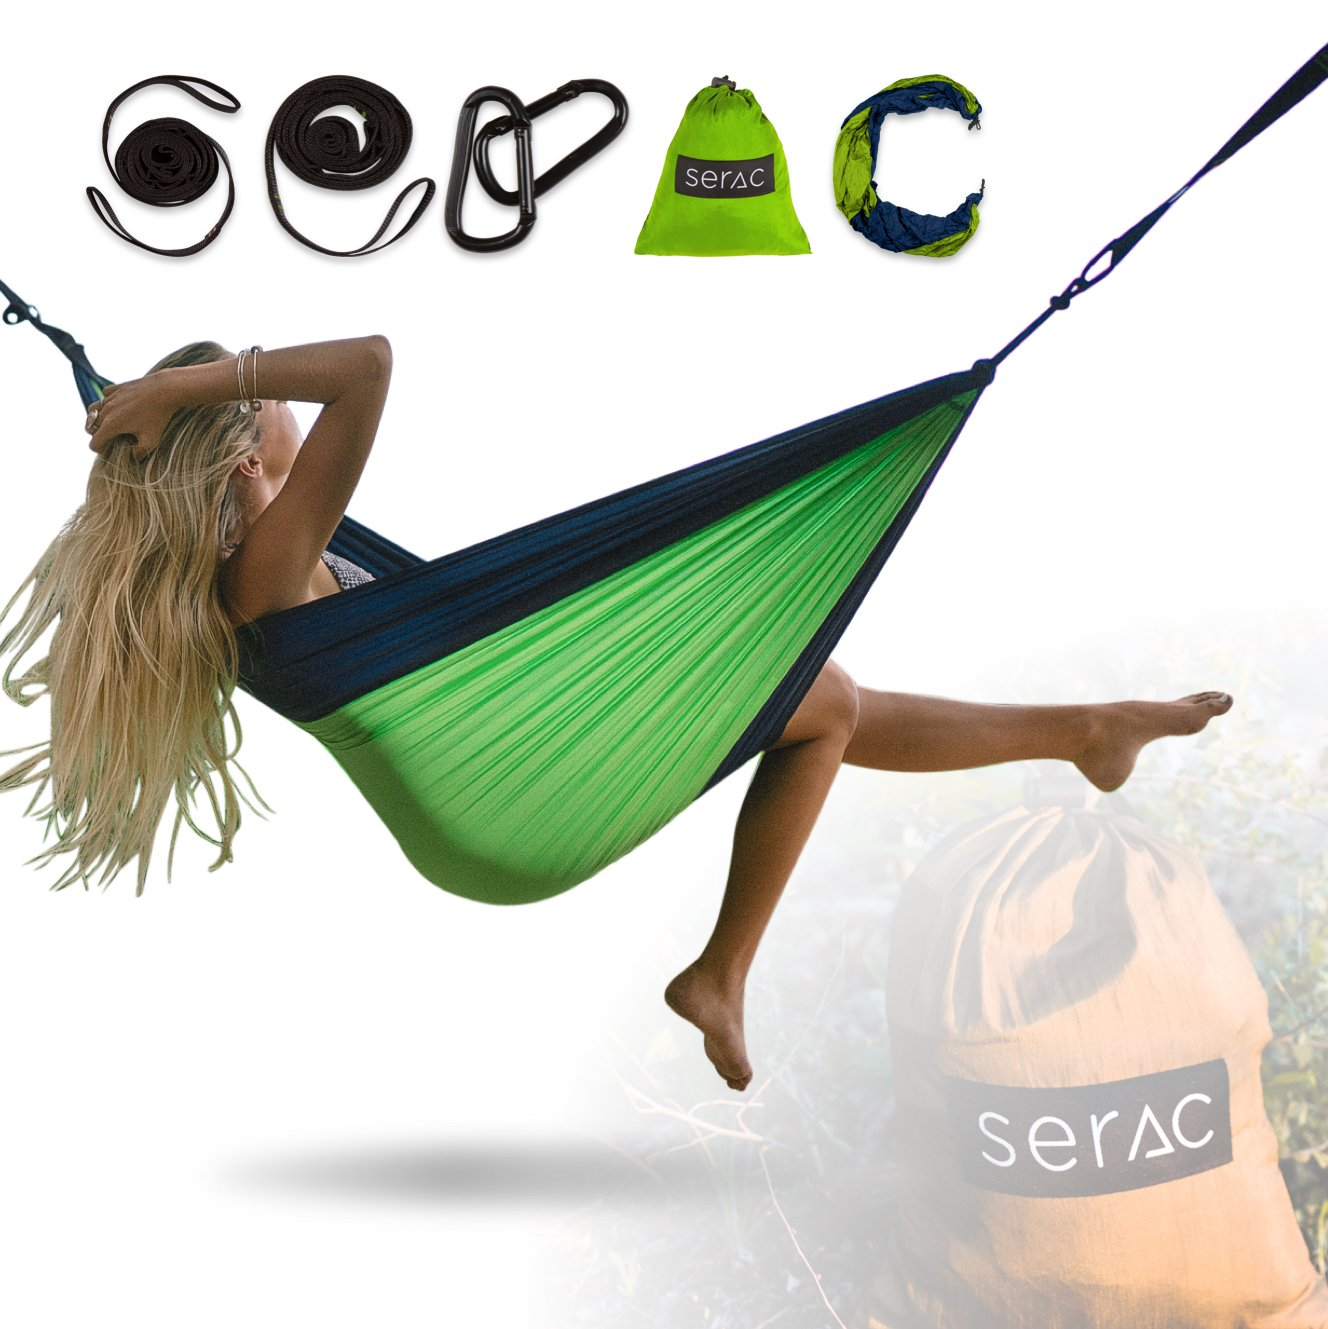 Durable Hammock /& Strap Bundle Classic Portable Single Camping Hammock with Suspension System - Perfect for The Backpack, Travel and Camping Serac